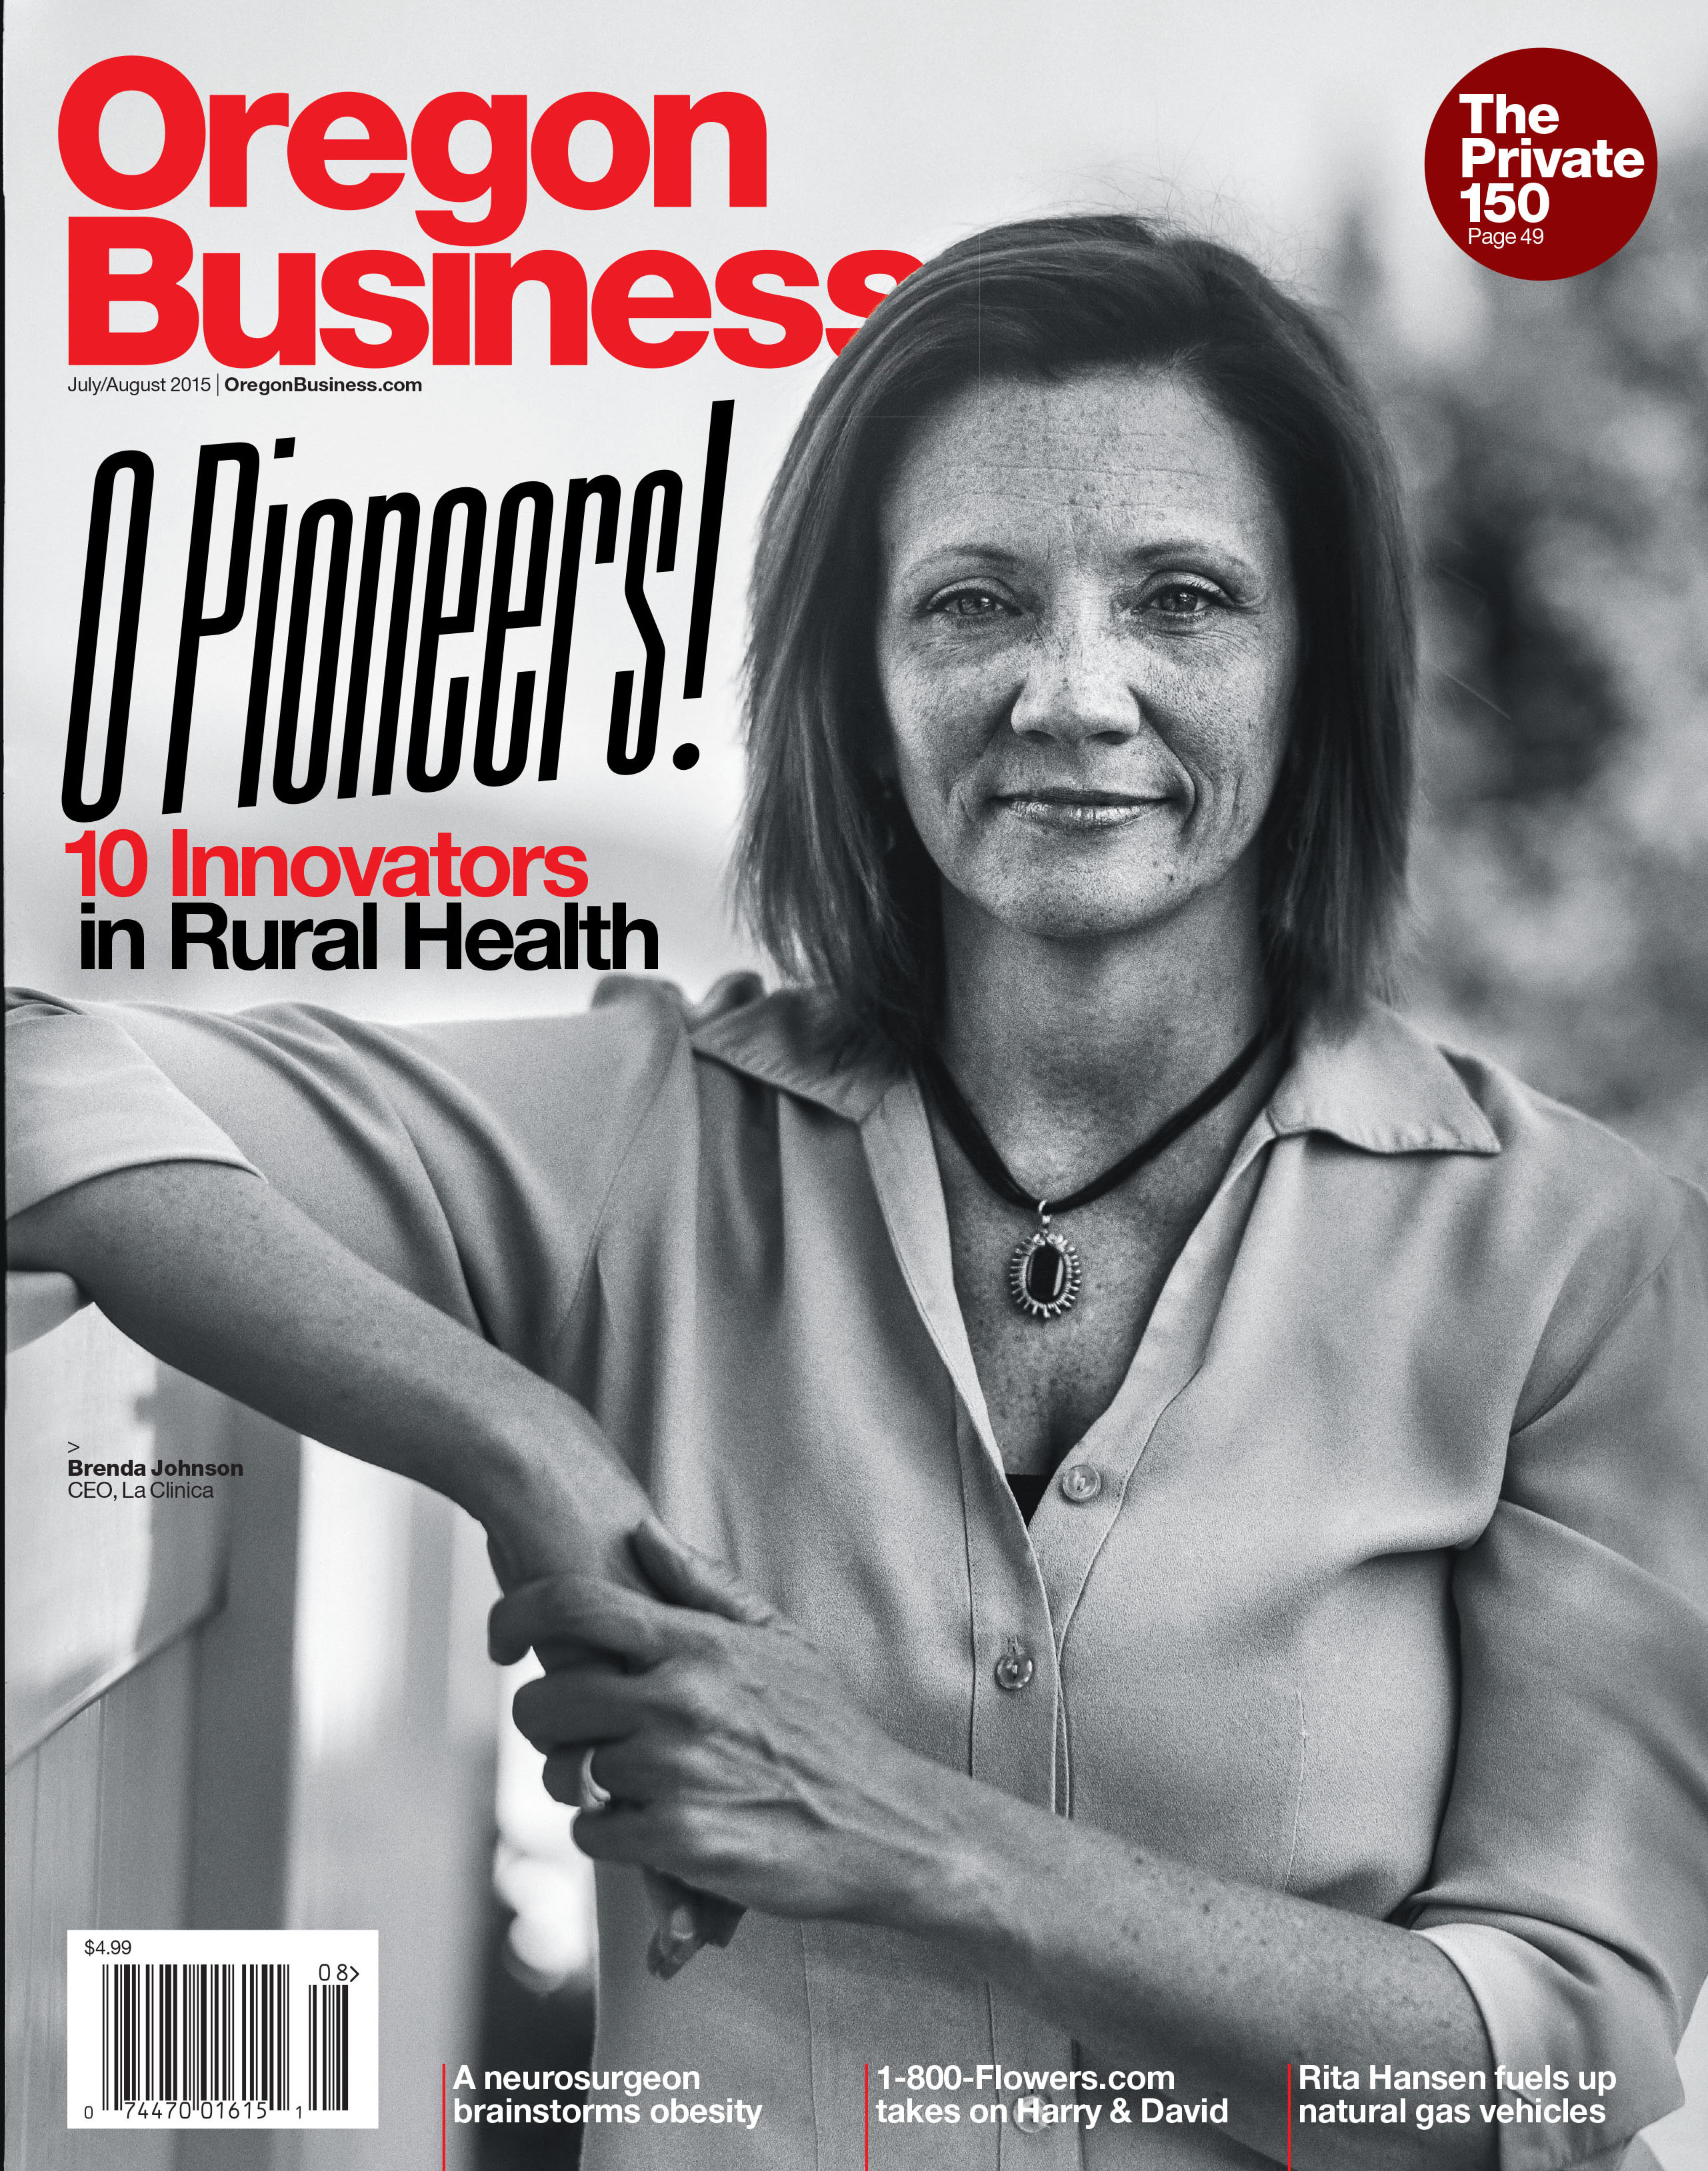 Oregon Business Magazine Cover July/Aug 2015